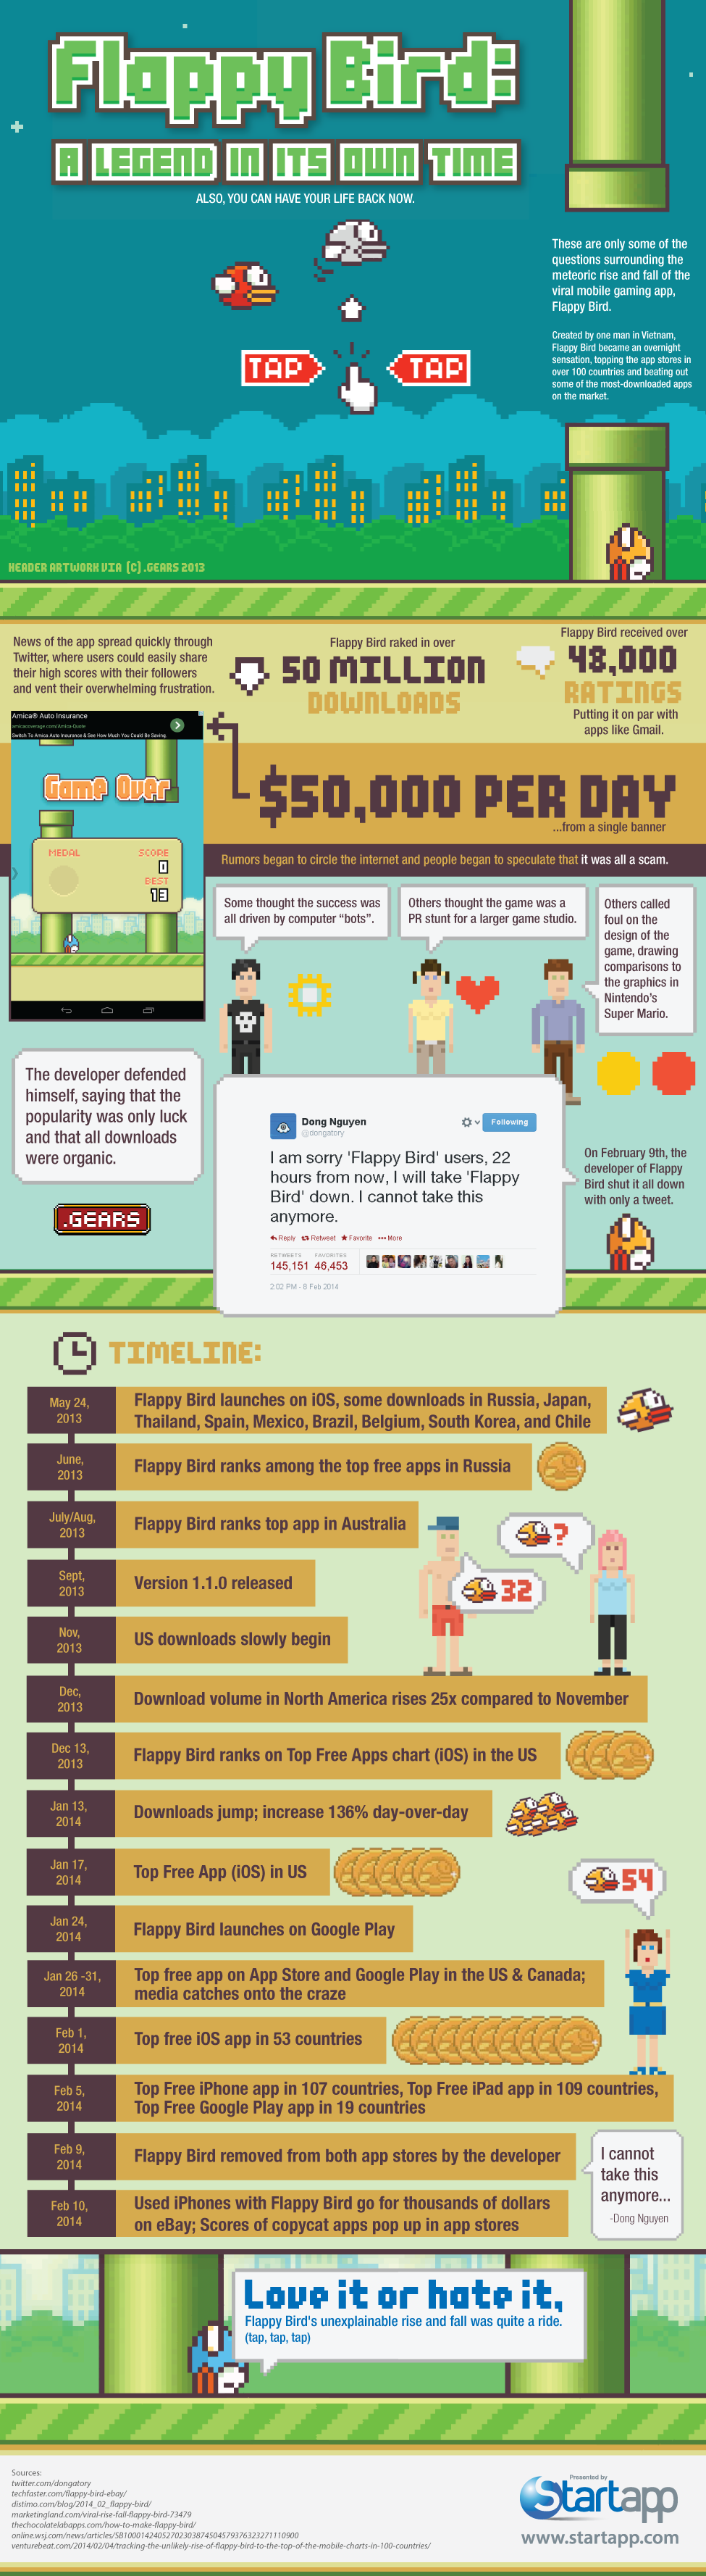 06 flappy-bird-infographic